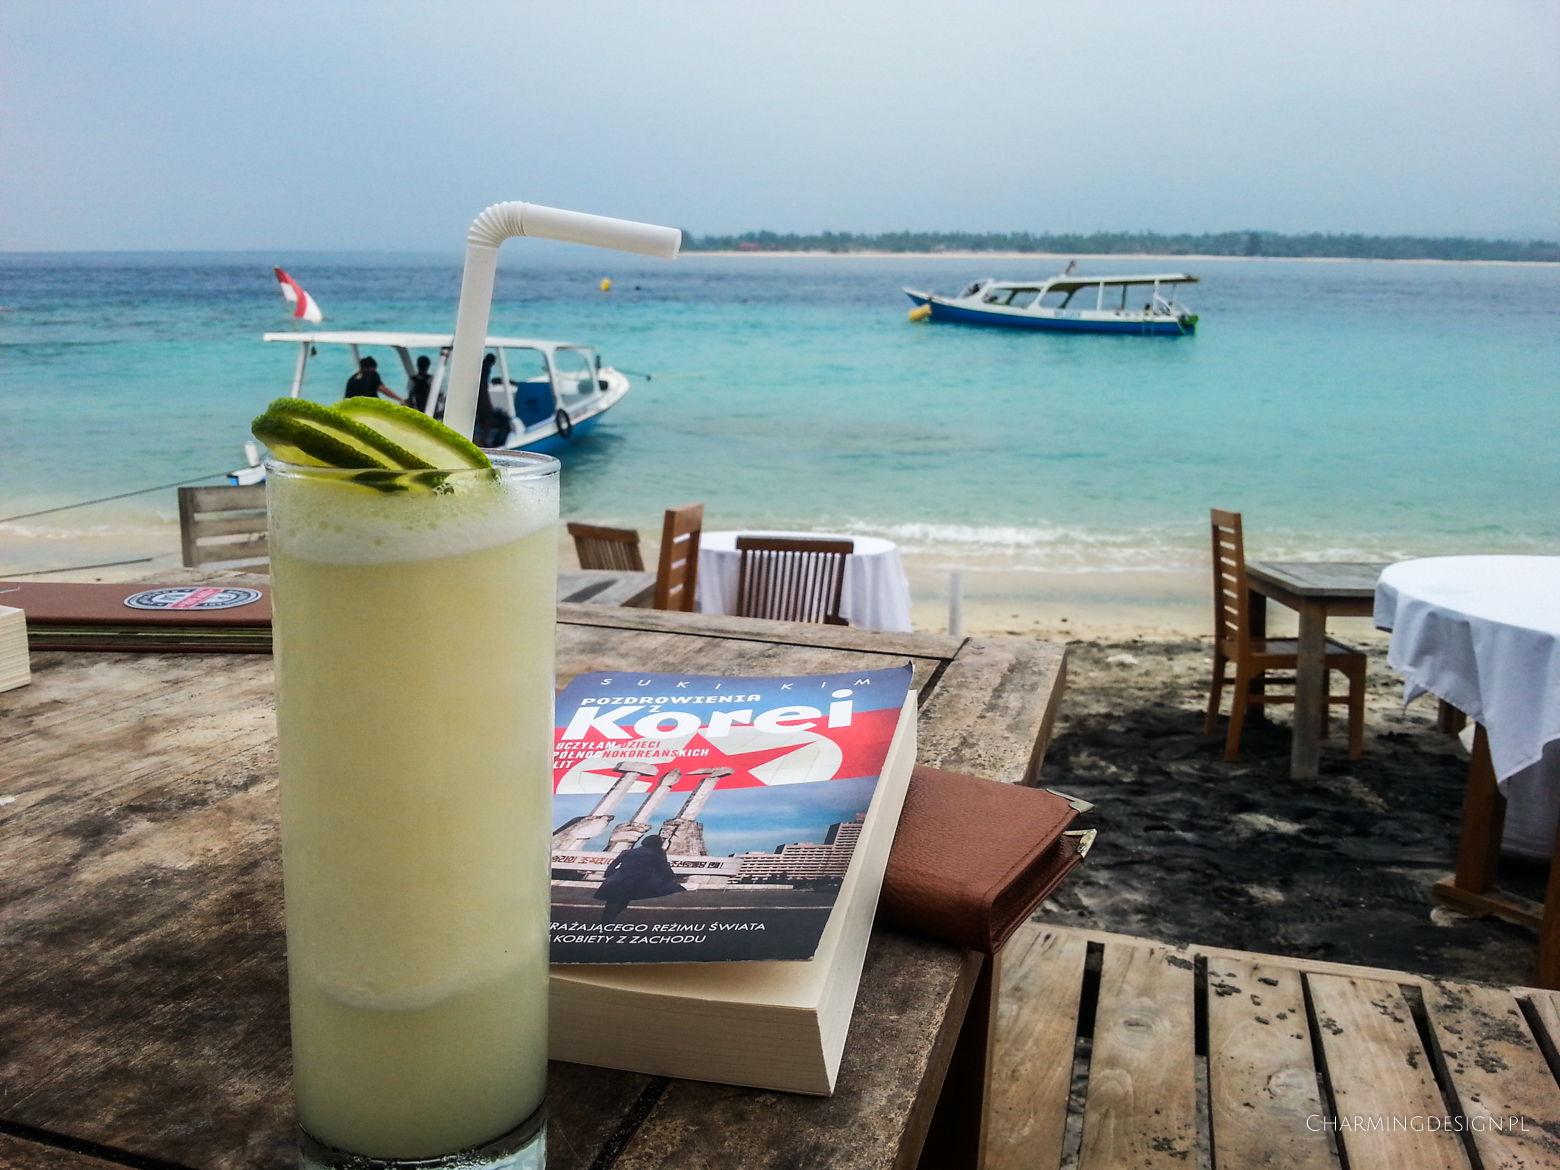 Gili Air w Indonezji (9)